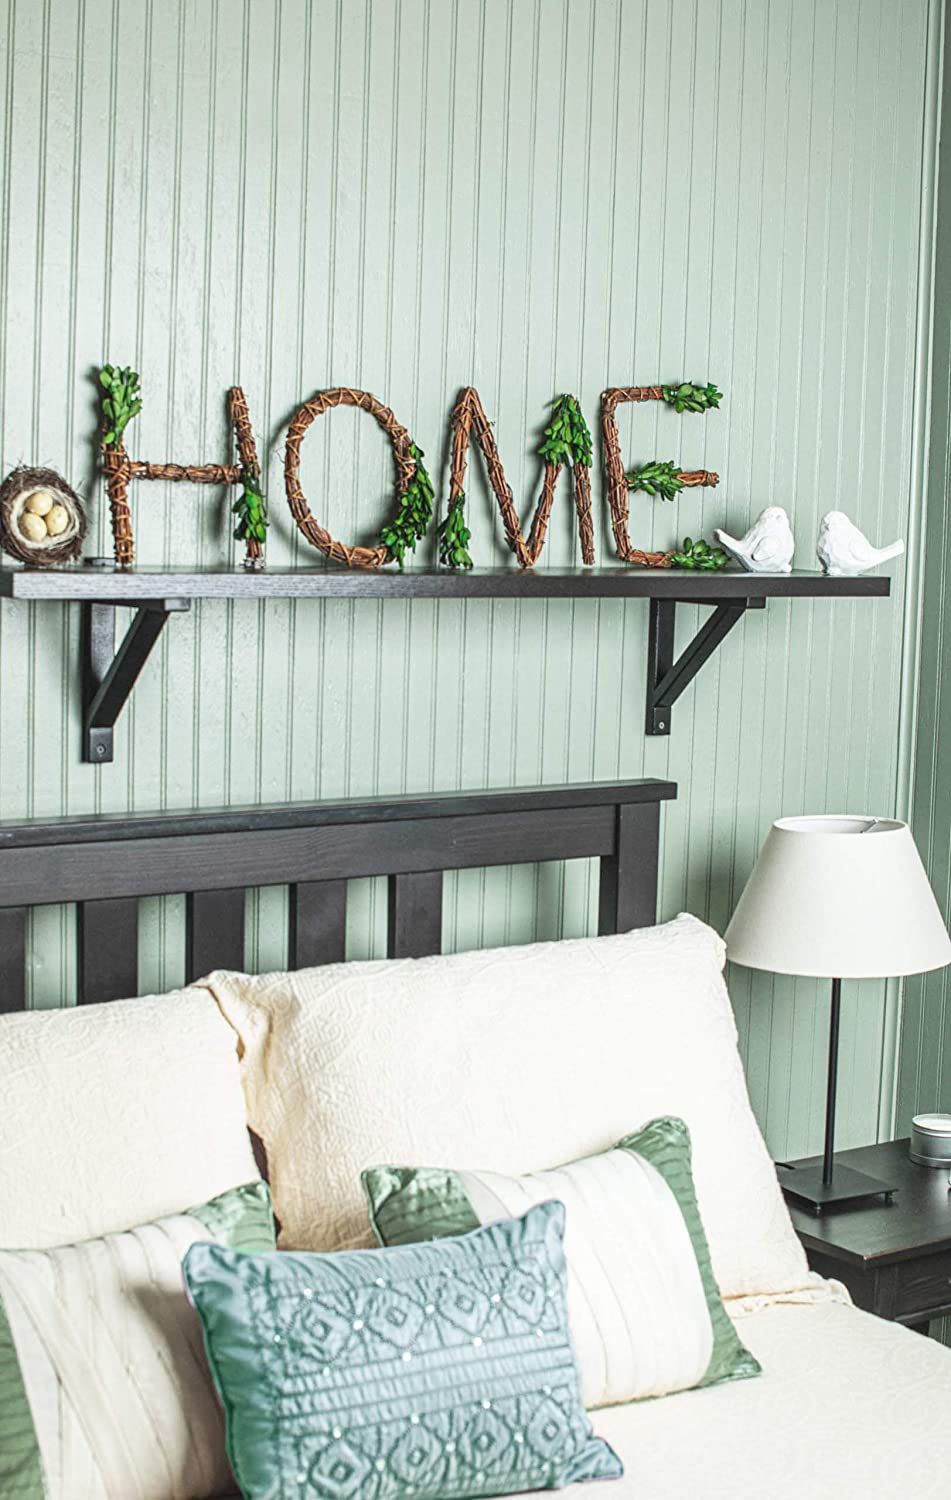 Amazon Com Farmhouse Wall Decor Home Grapevine Sign Rustic Wall Decorations For Living Room A In 2020 Farmhouse Kitchen Decor Farmhouse Wall Decor Rustic Wall Decor